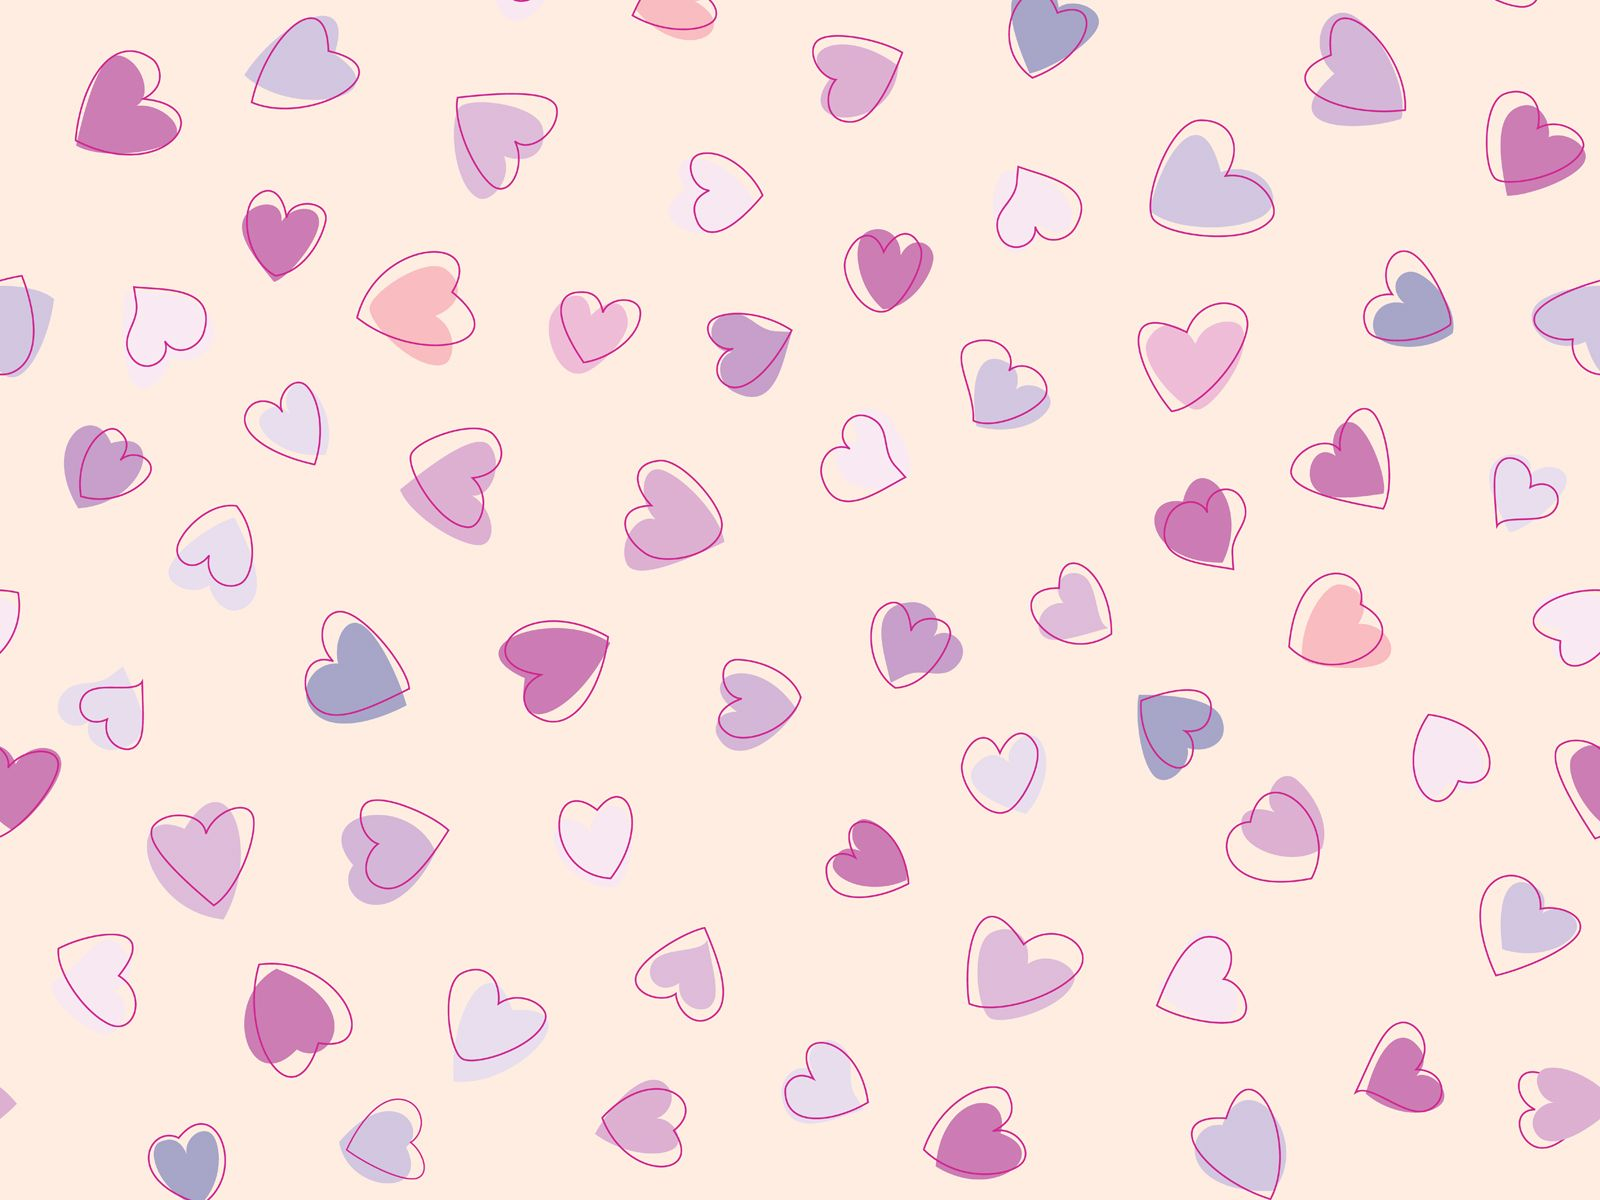 Love Heart Design Wallpaper : cute heart pattern wallpaper 41517 Wallpapers Pinterest Heart wallpaper, Wallpapers and Heart